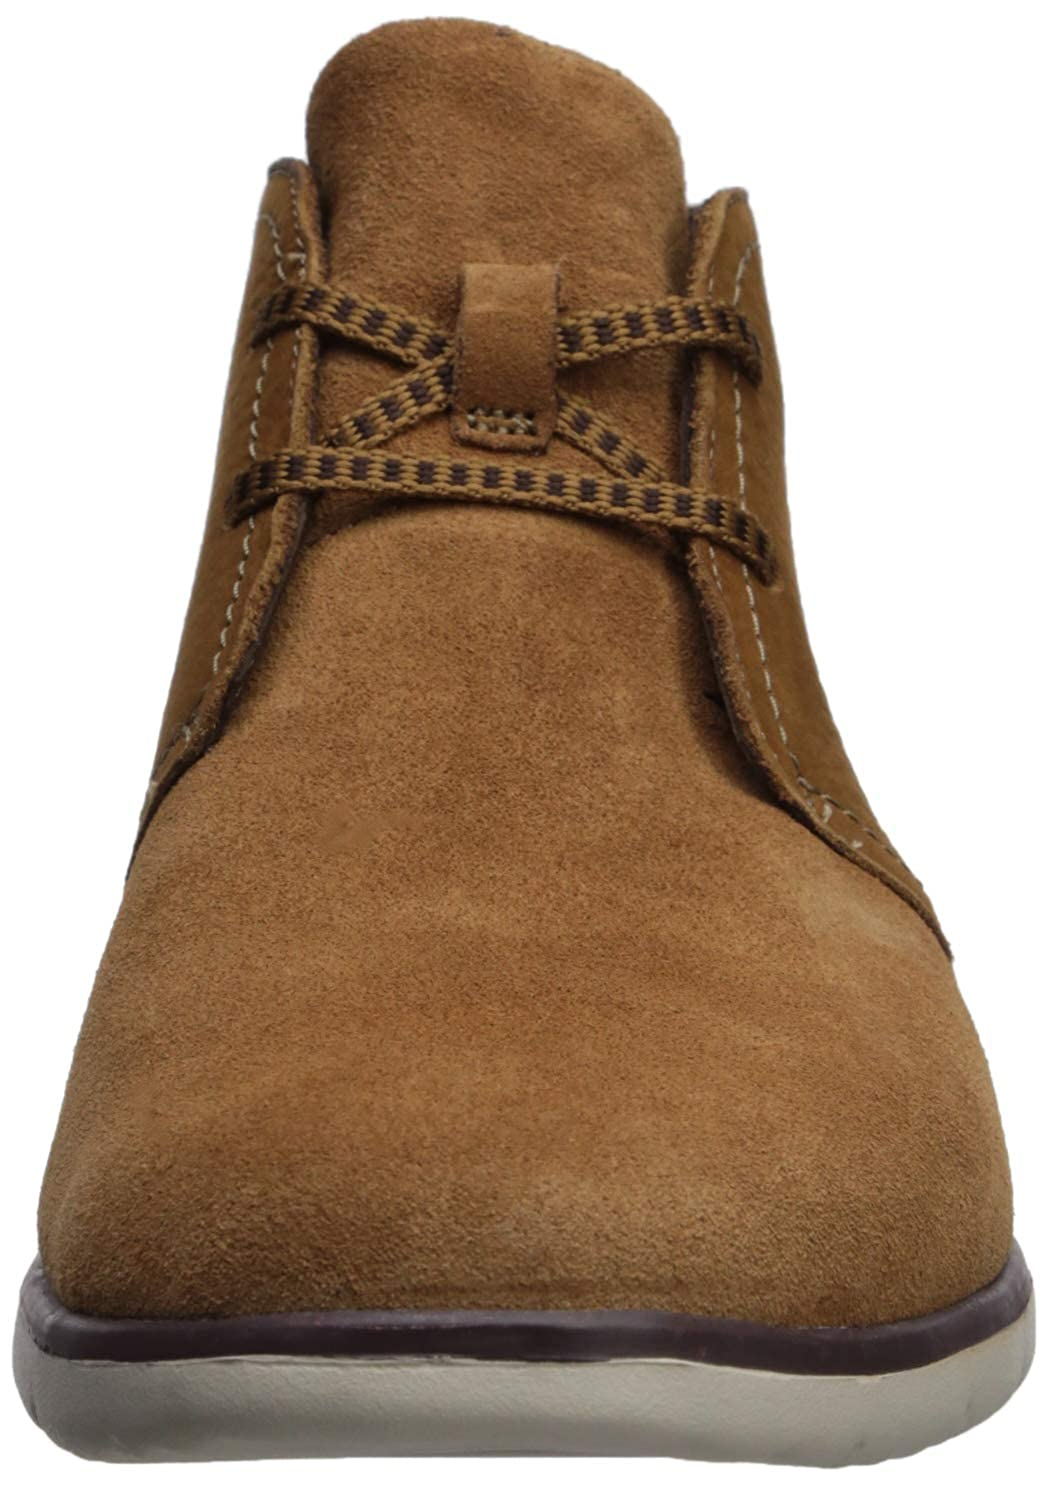 4dd6a5d37ef UGG Men's Freamon Waterproof Chukka Boot, Chestnut, 11 Medium US ...